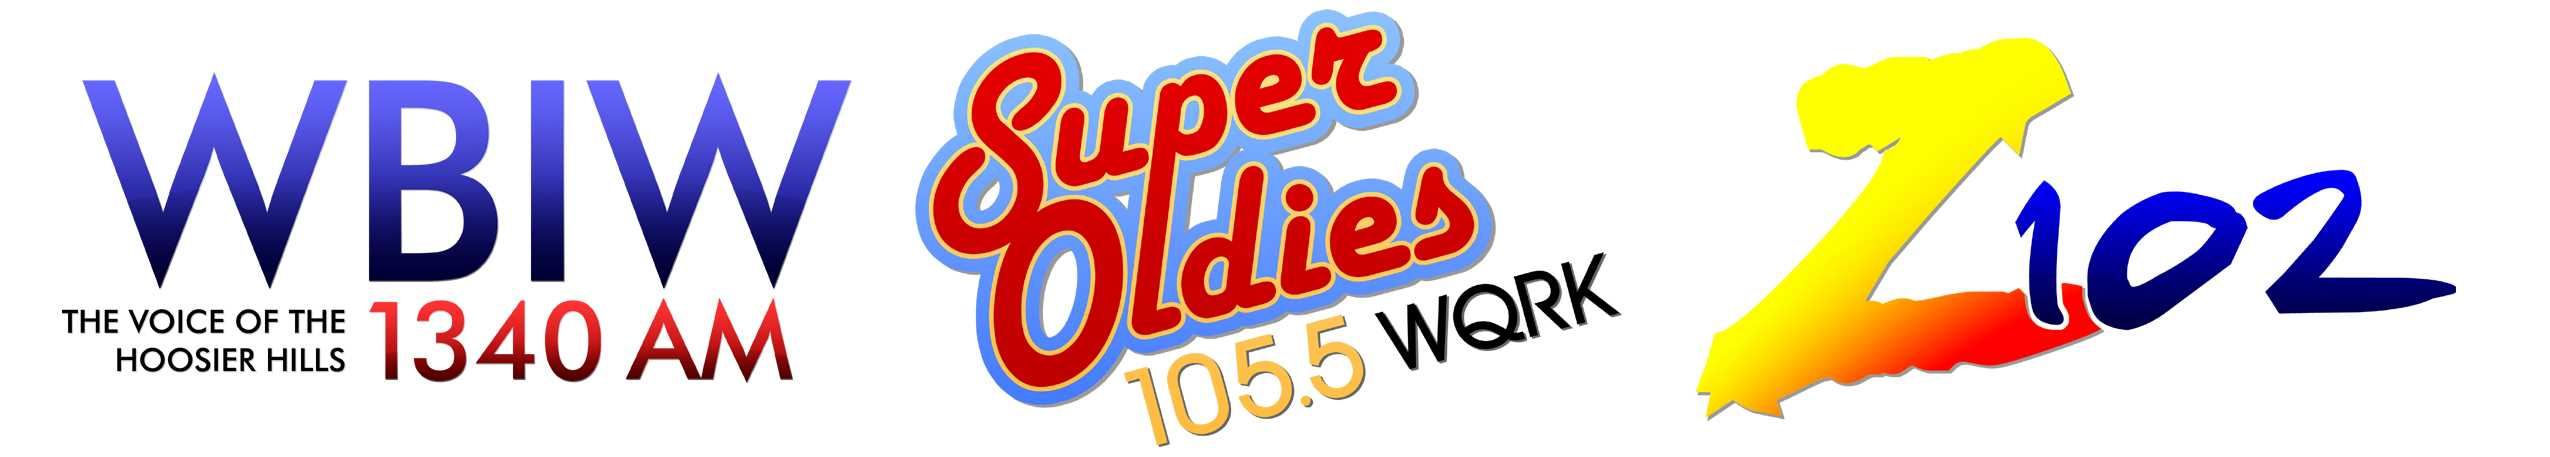 WBIW SUper Oldies Z102